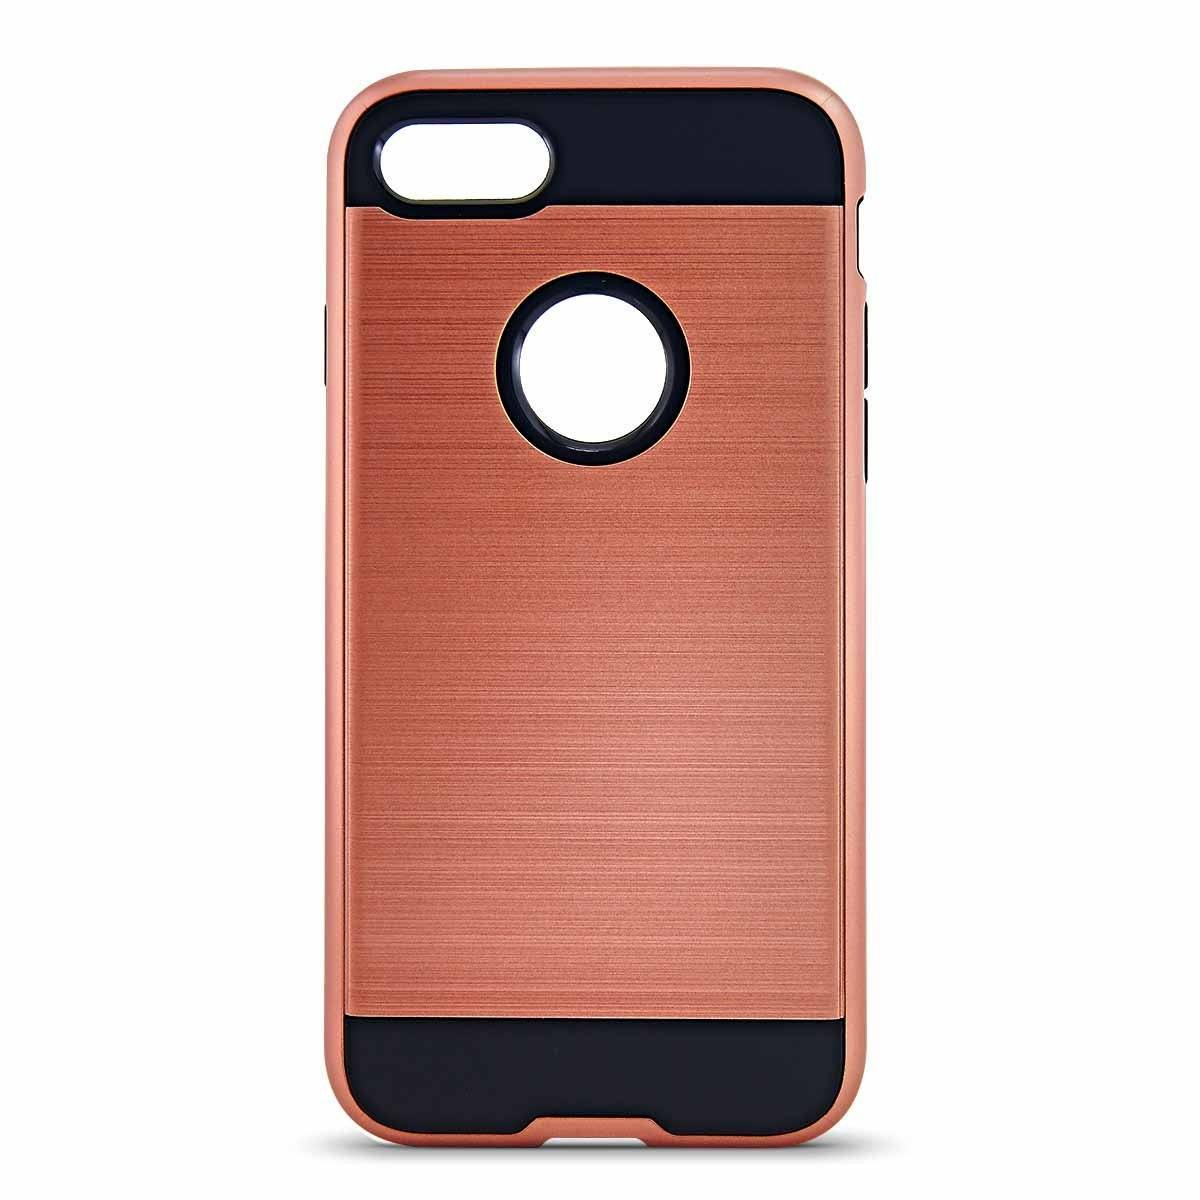 MD Hard Case for iPhone 7 /8 - Rose Gold